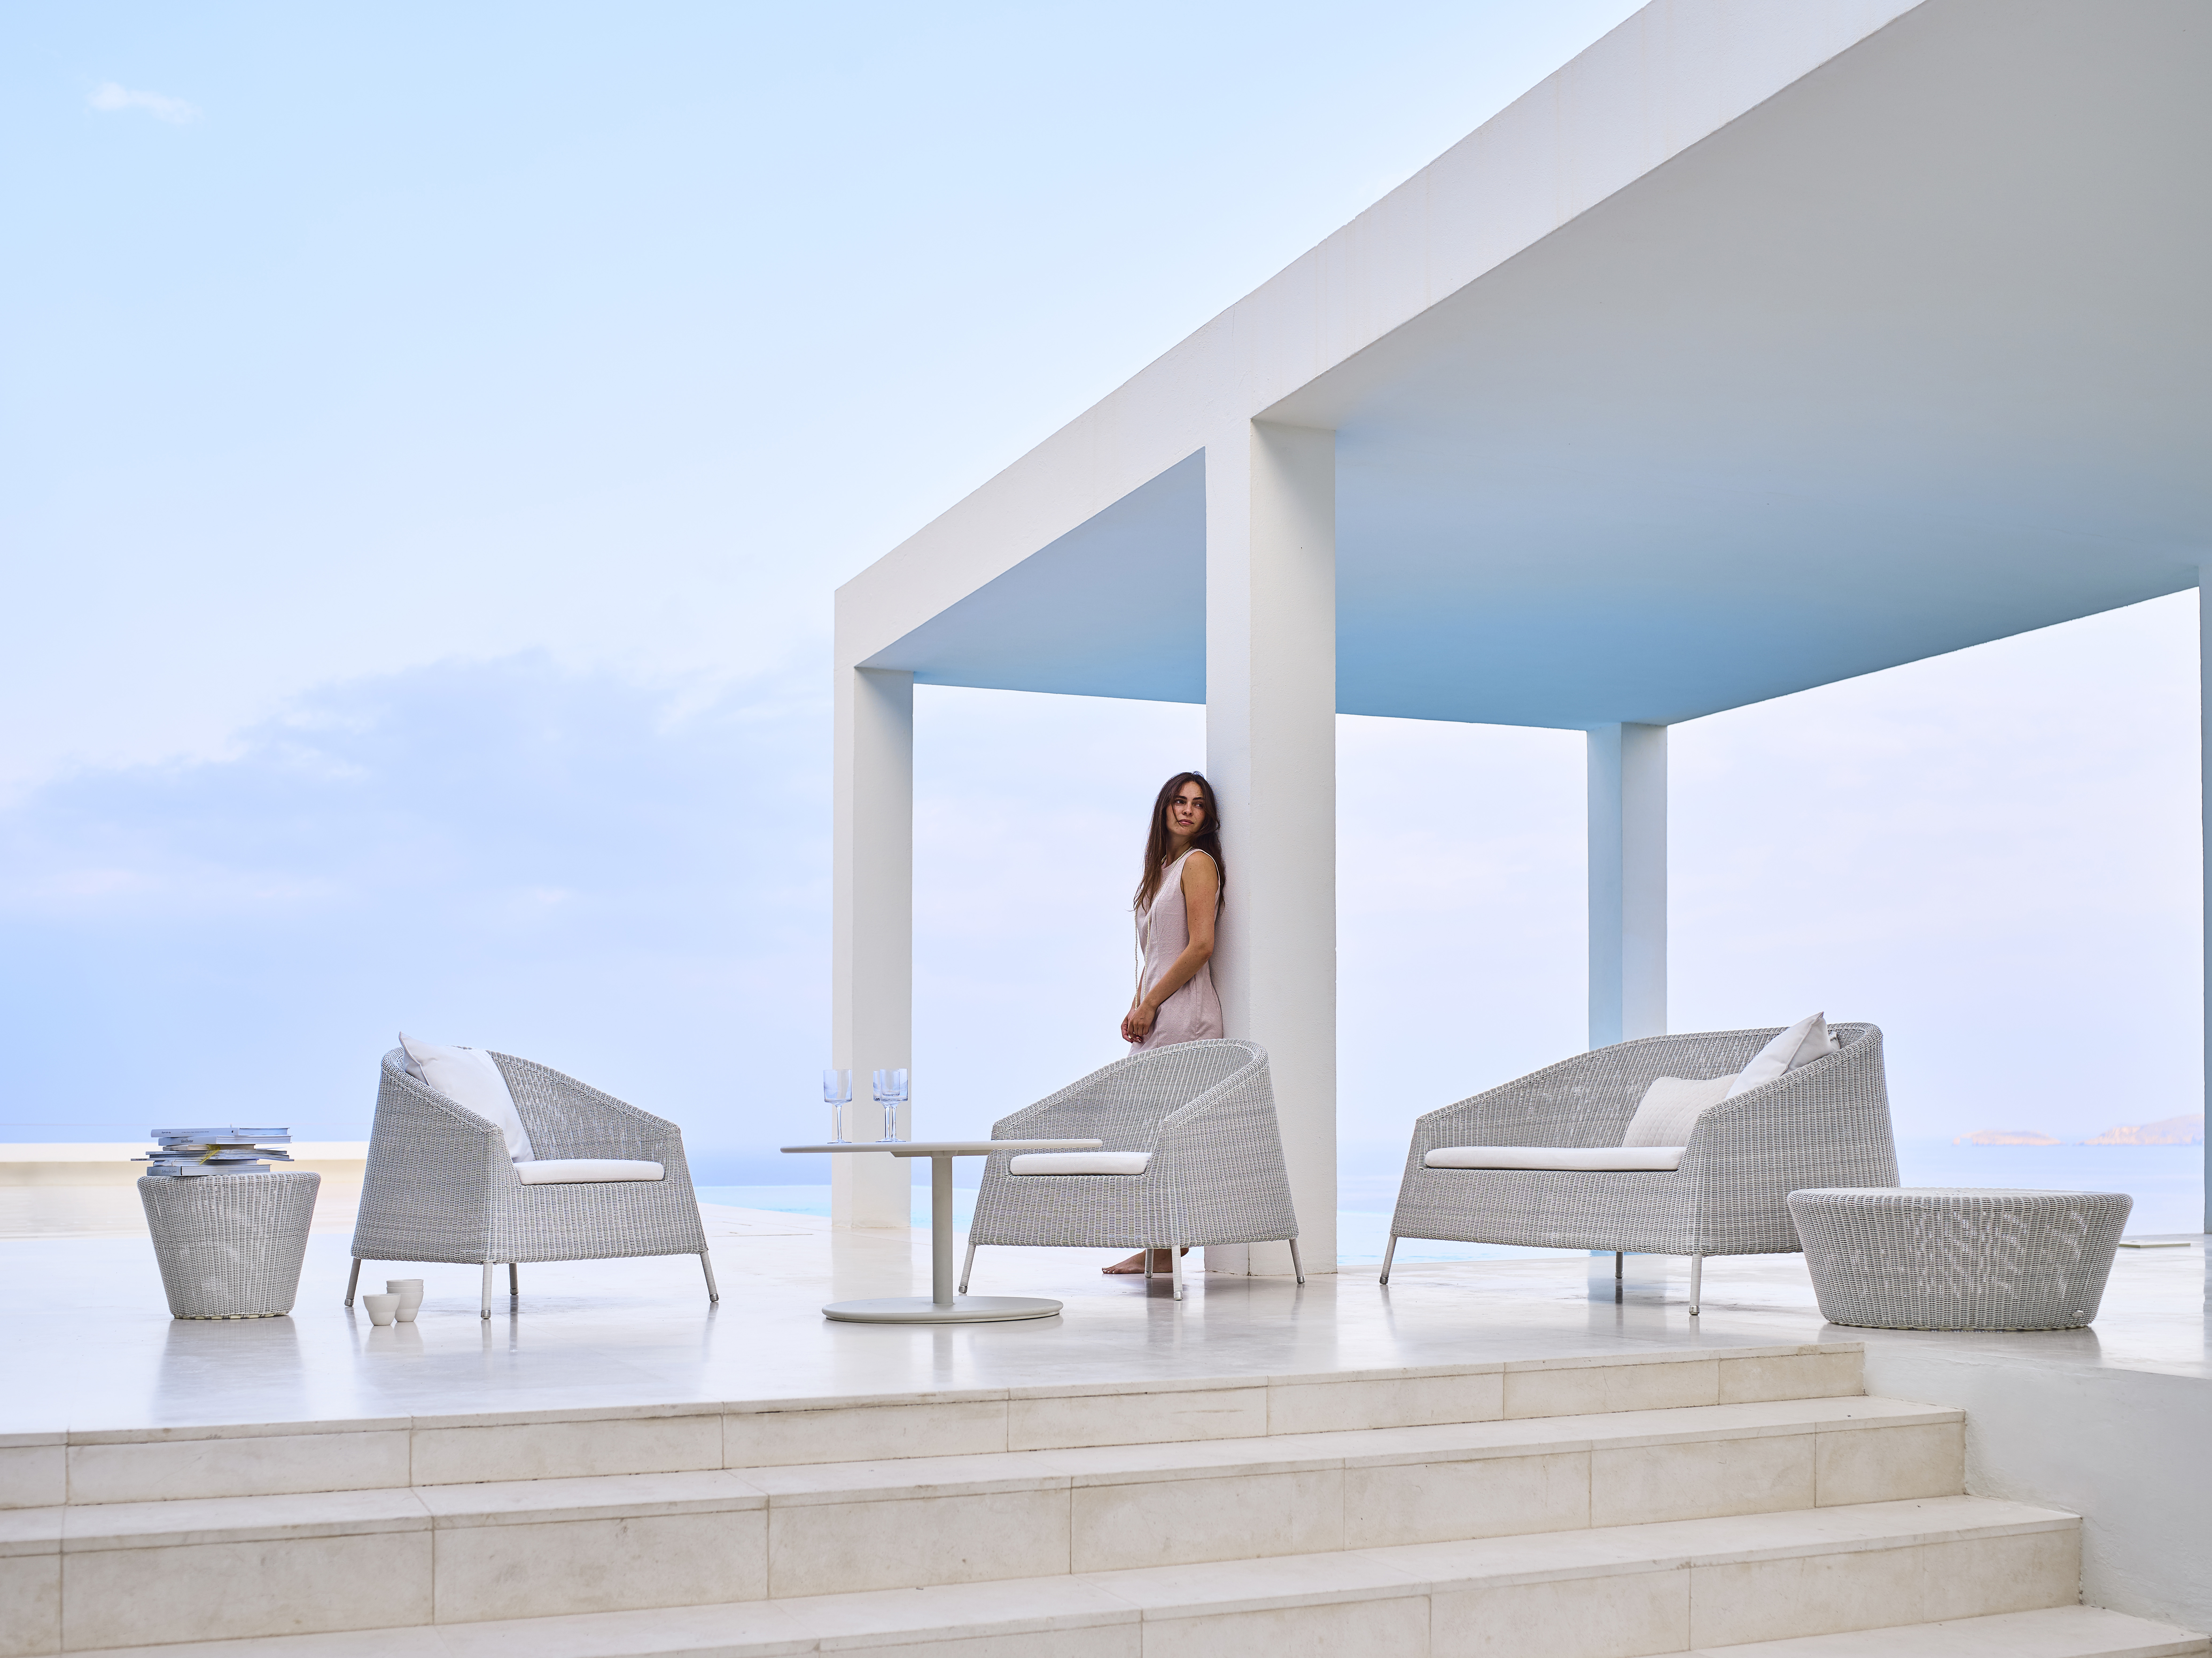 How To Make Your Home An Oasis Of Harmony In 5 Easy Steps  # Muebles Harmony